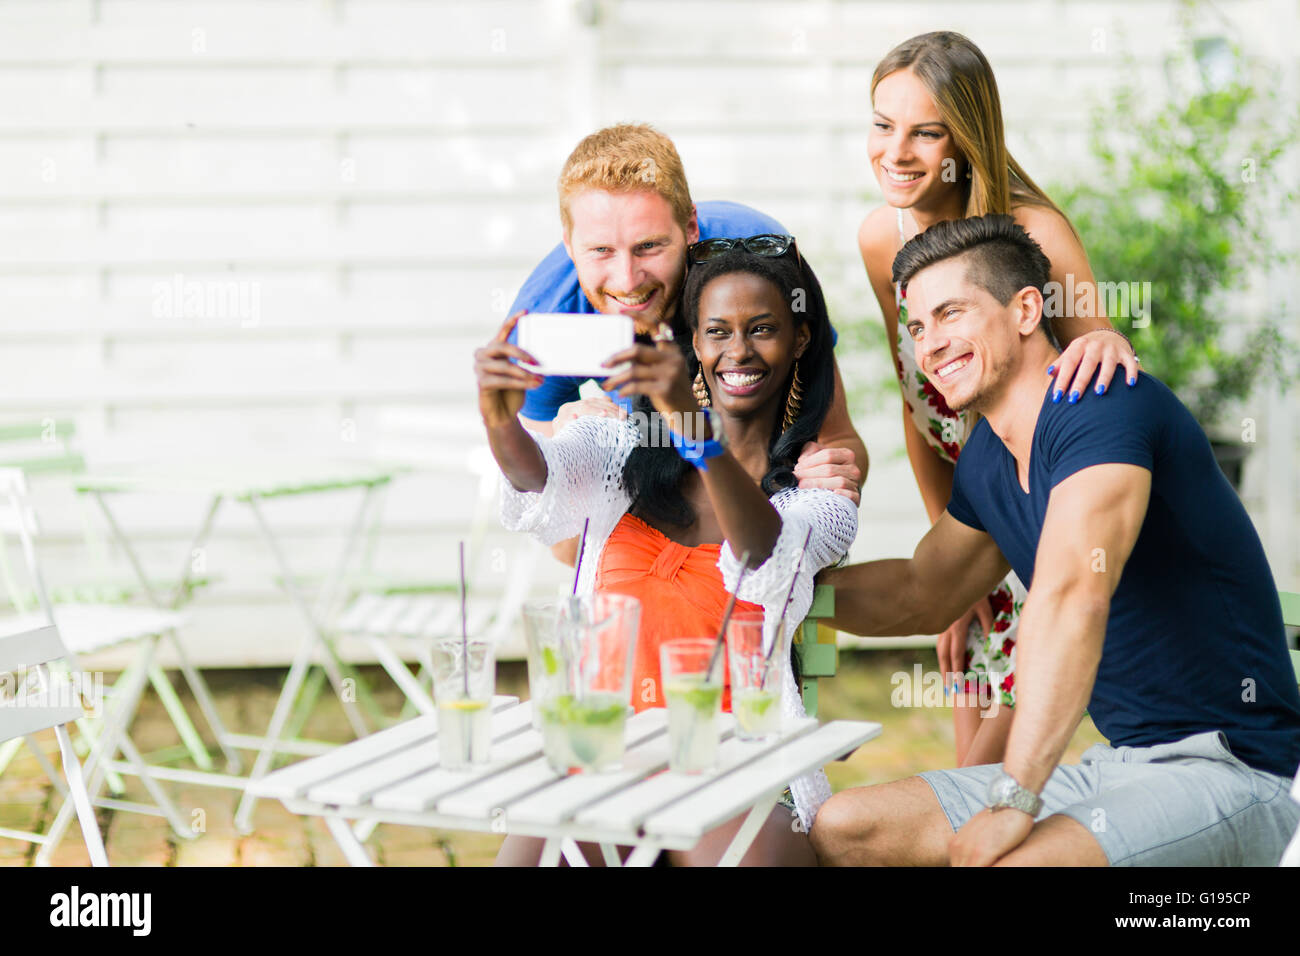 A group of friends sitting a table and talking smiling  while taking selfies on a hot summer day - Stock Image